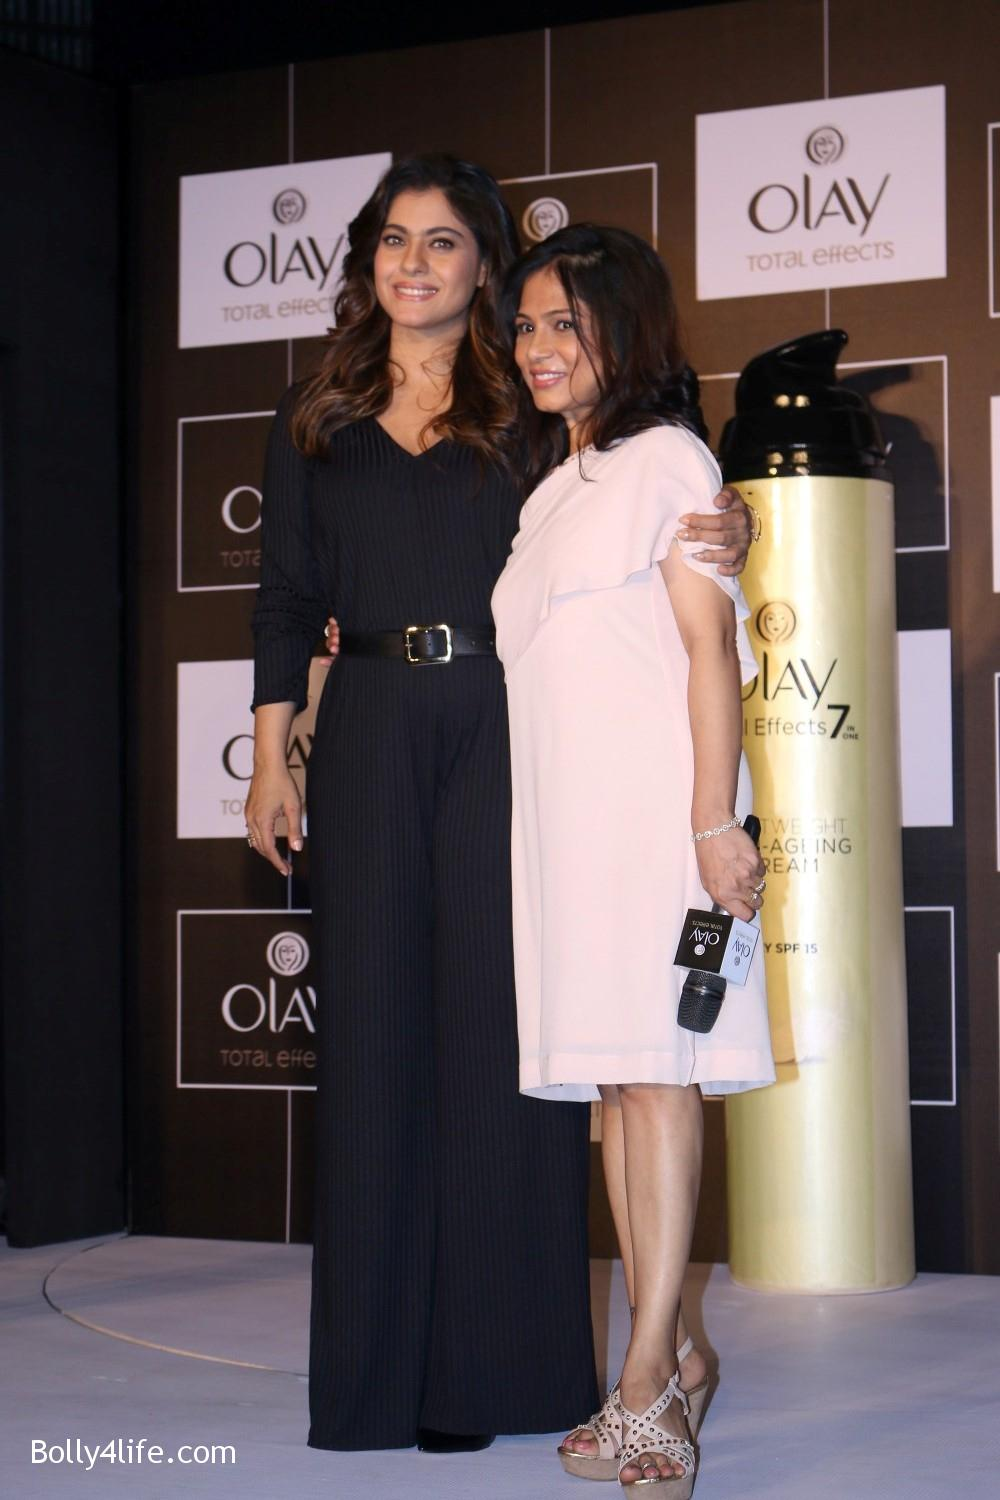 Kajol-Devgan-during-the-launch-of-Olay-Total-Effects-new-cream-10.jpg